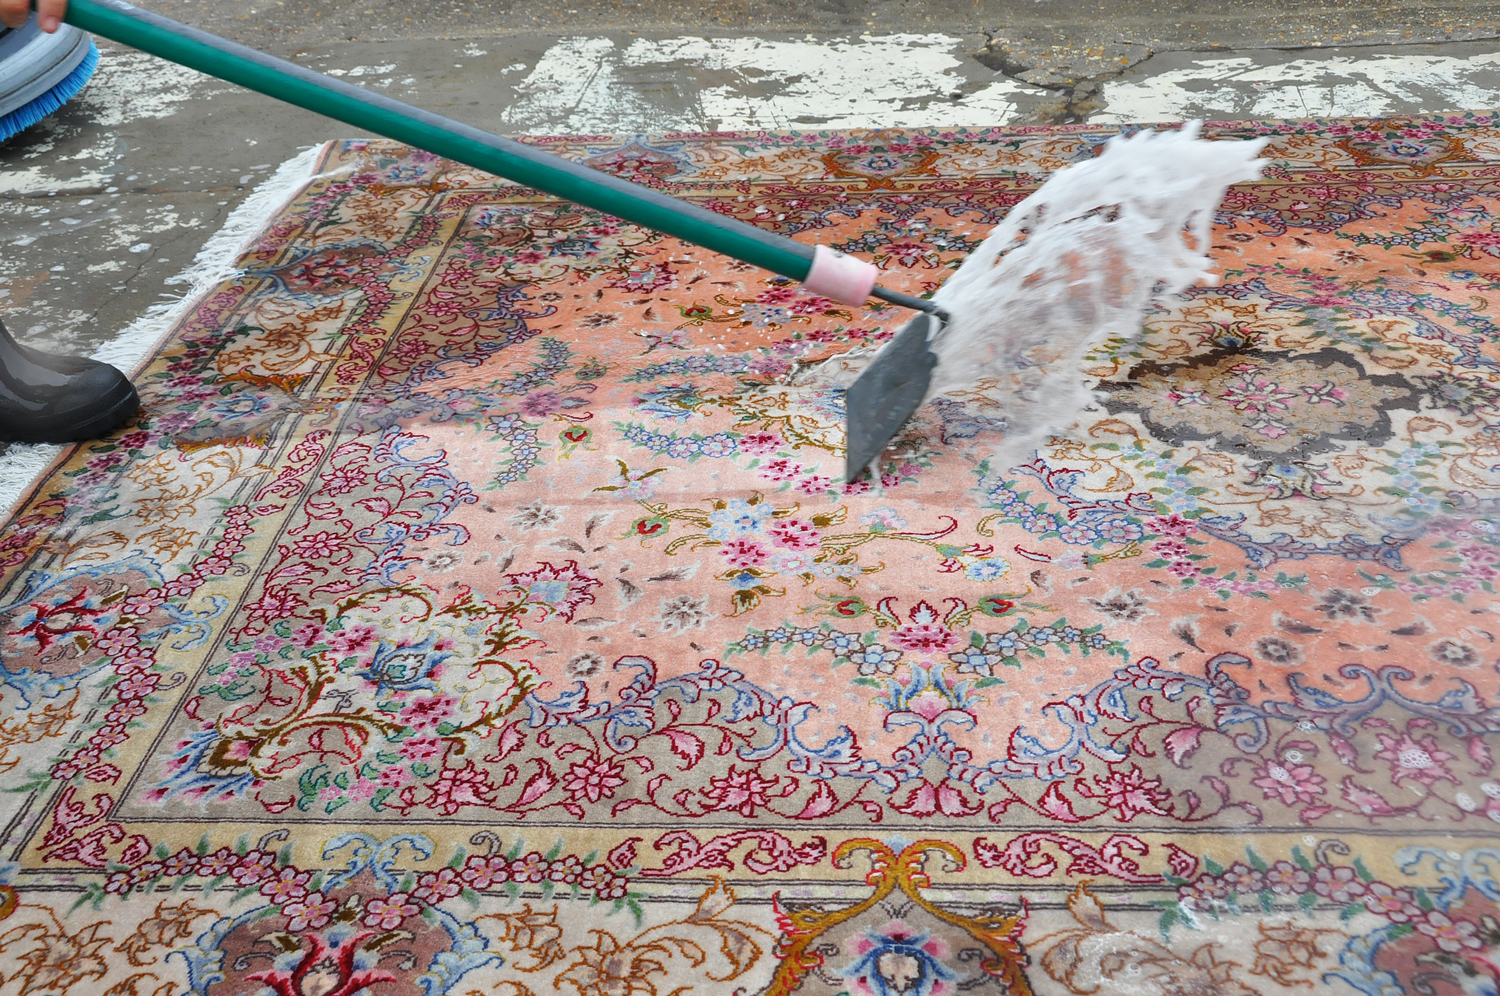 Cleaning-process-karimi-rug-05.jpg